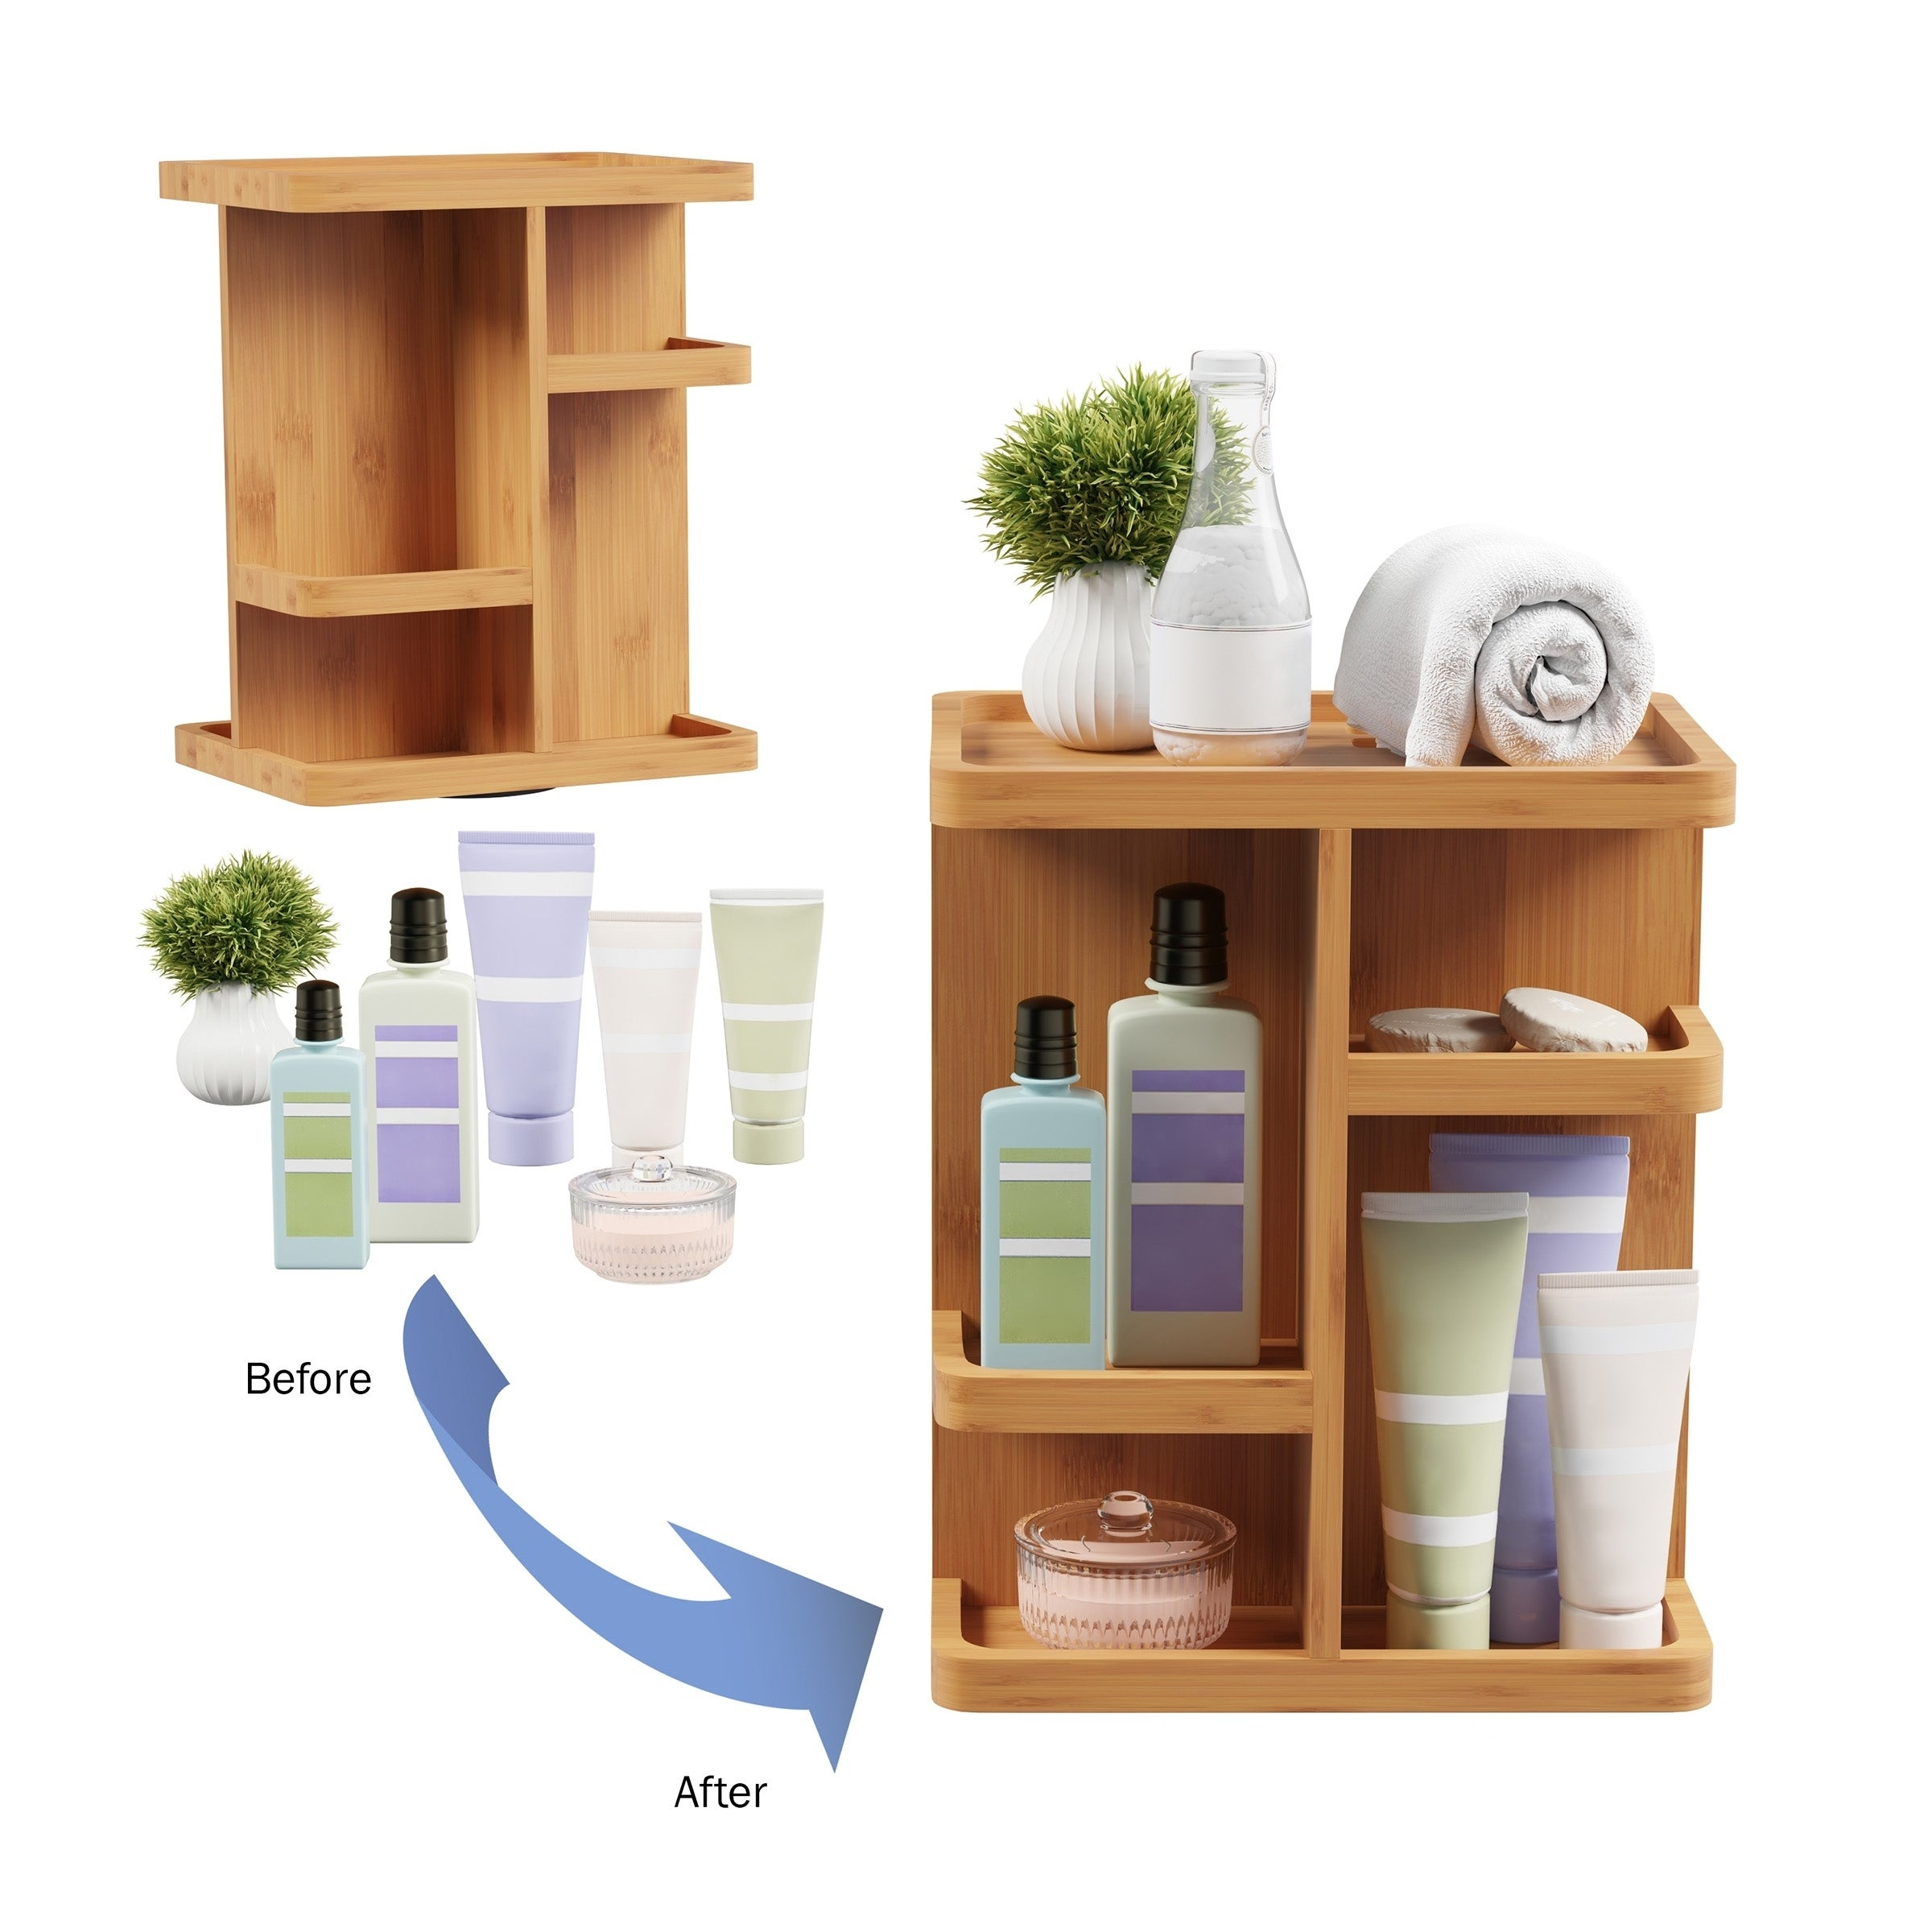 Makeup Organizer Rotating Eco Friendly Compact Modern Bamboo Skincare Cosmetic And Vanity Carousel By Lavish Home Overstock 27390780